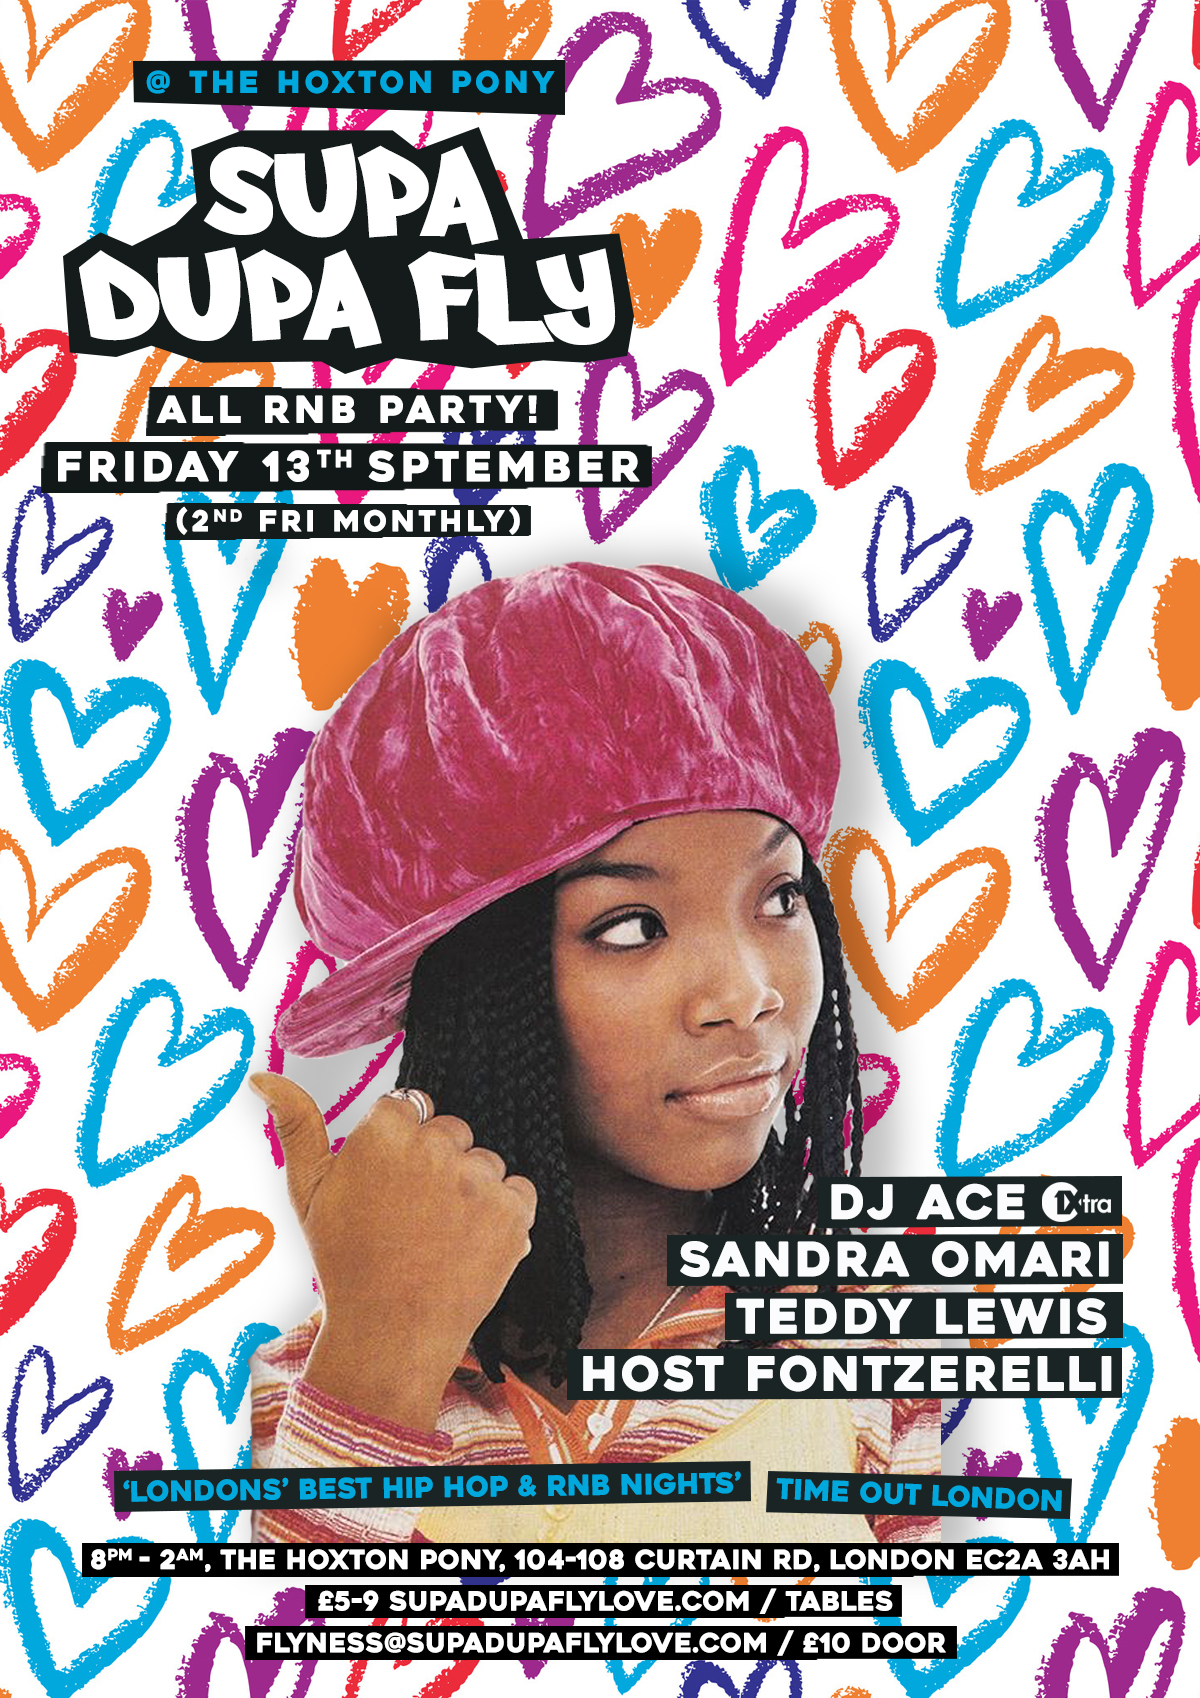 Supa Dupa Fly x All RnB x 2nd Fri's